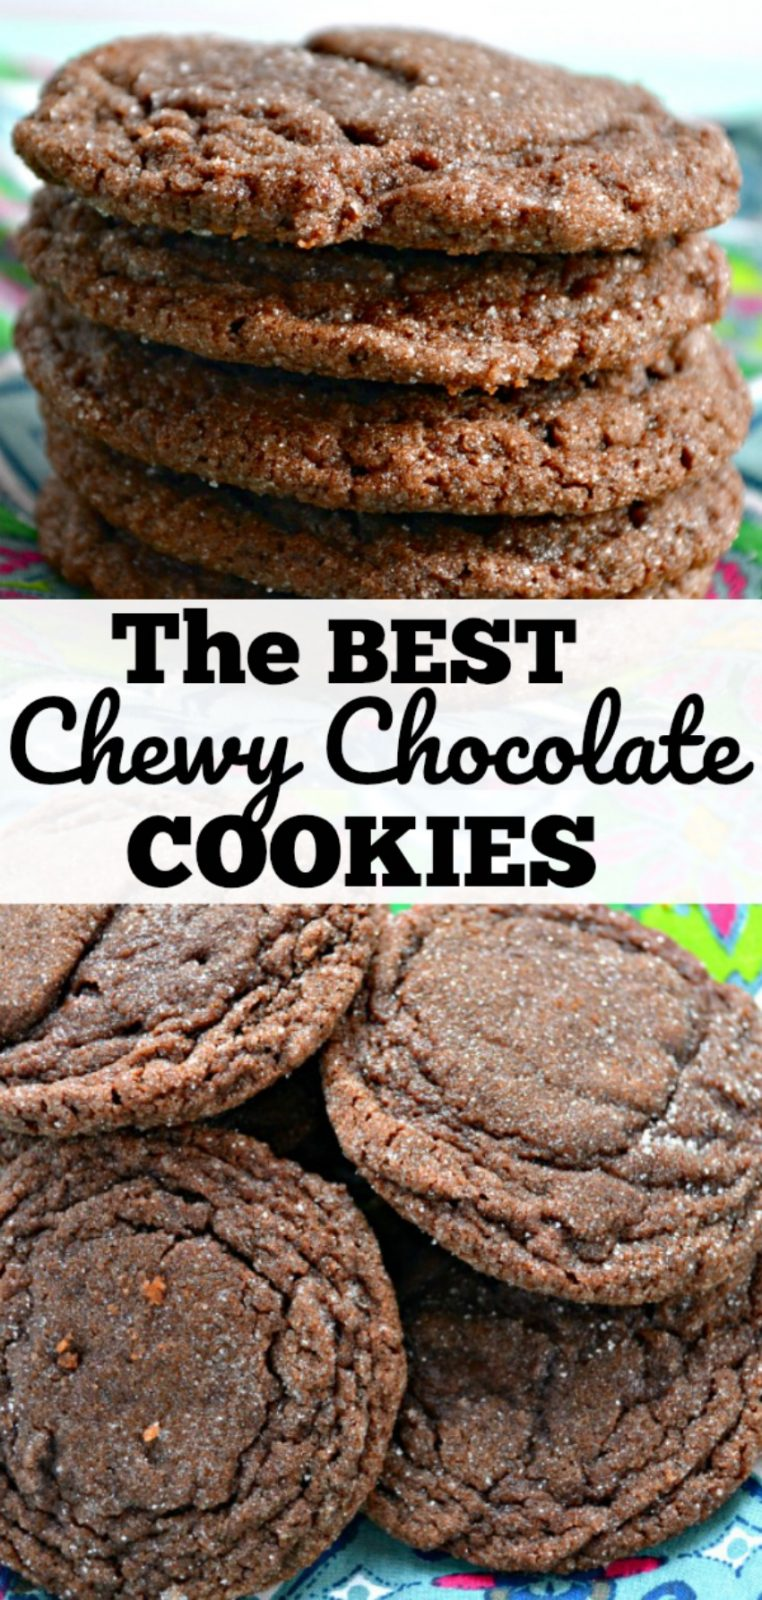 The BEST Chewy Chocolate Cookies on the planet!